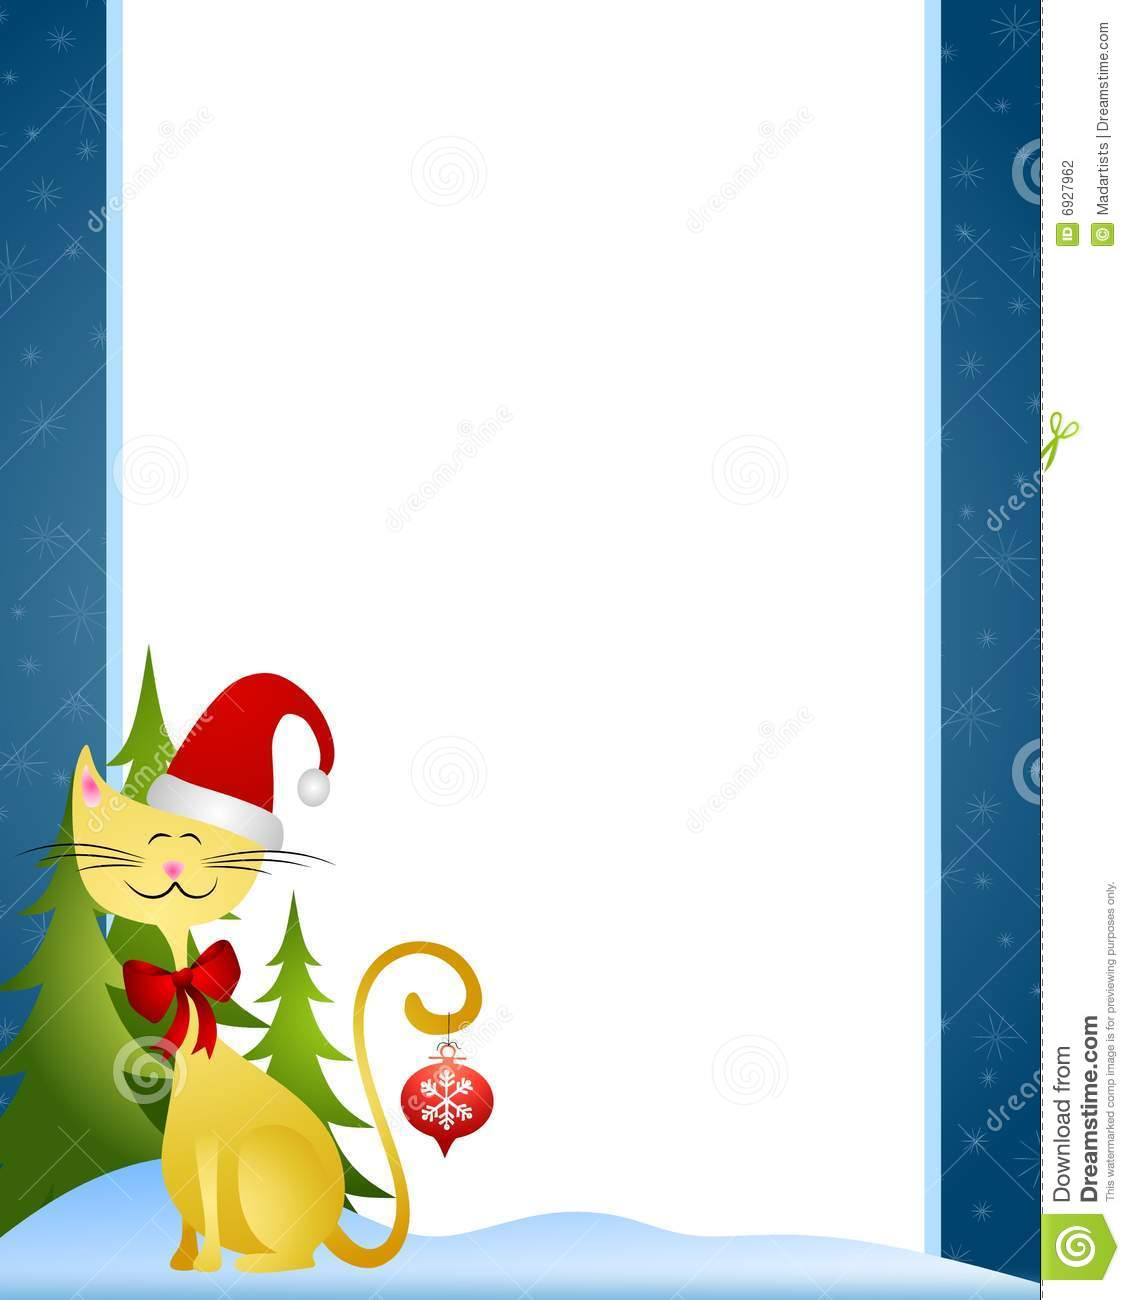 hight resolution of christmas border clipart